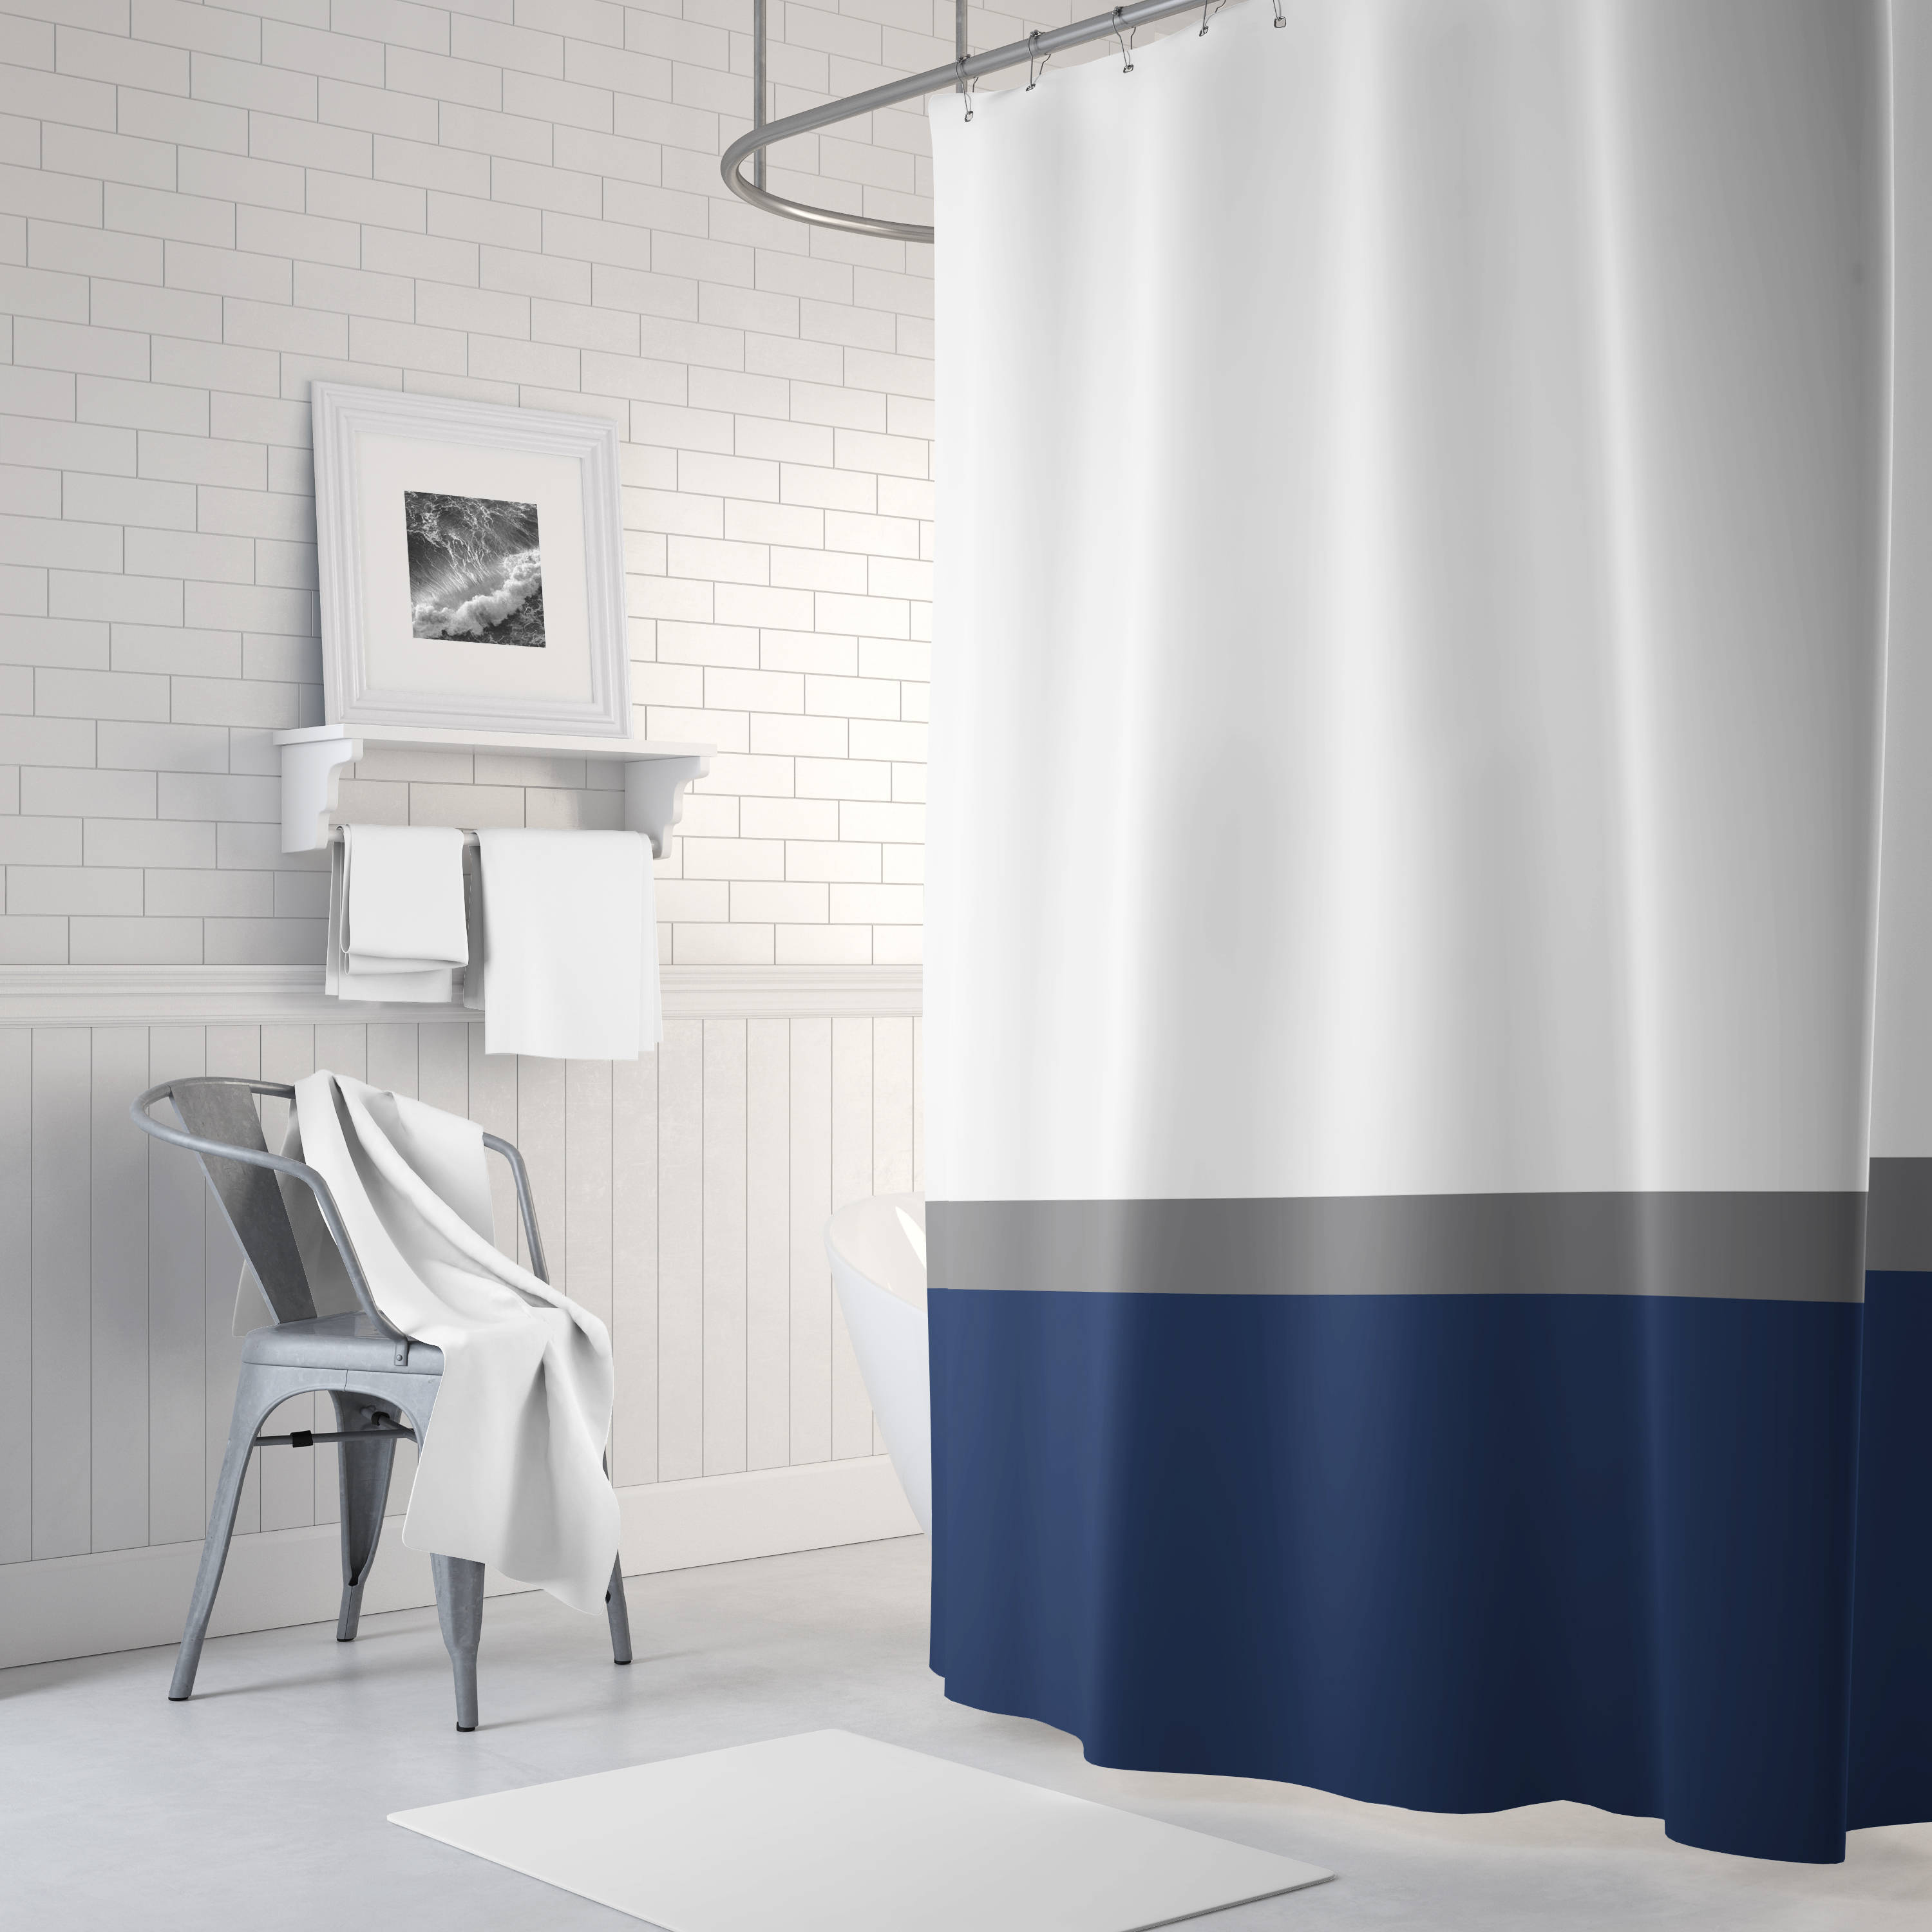 Color Block Shower Curtain Grey White Navy Blue Or Any Colors Standard Extra Long Sizes Custom Home Decor Striped Stripes